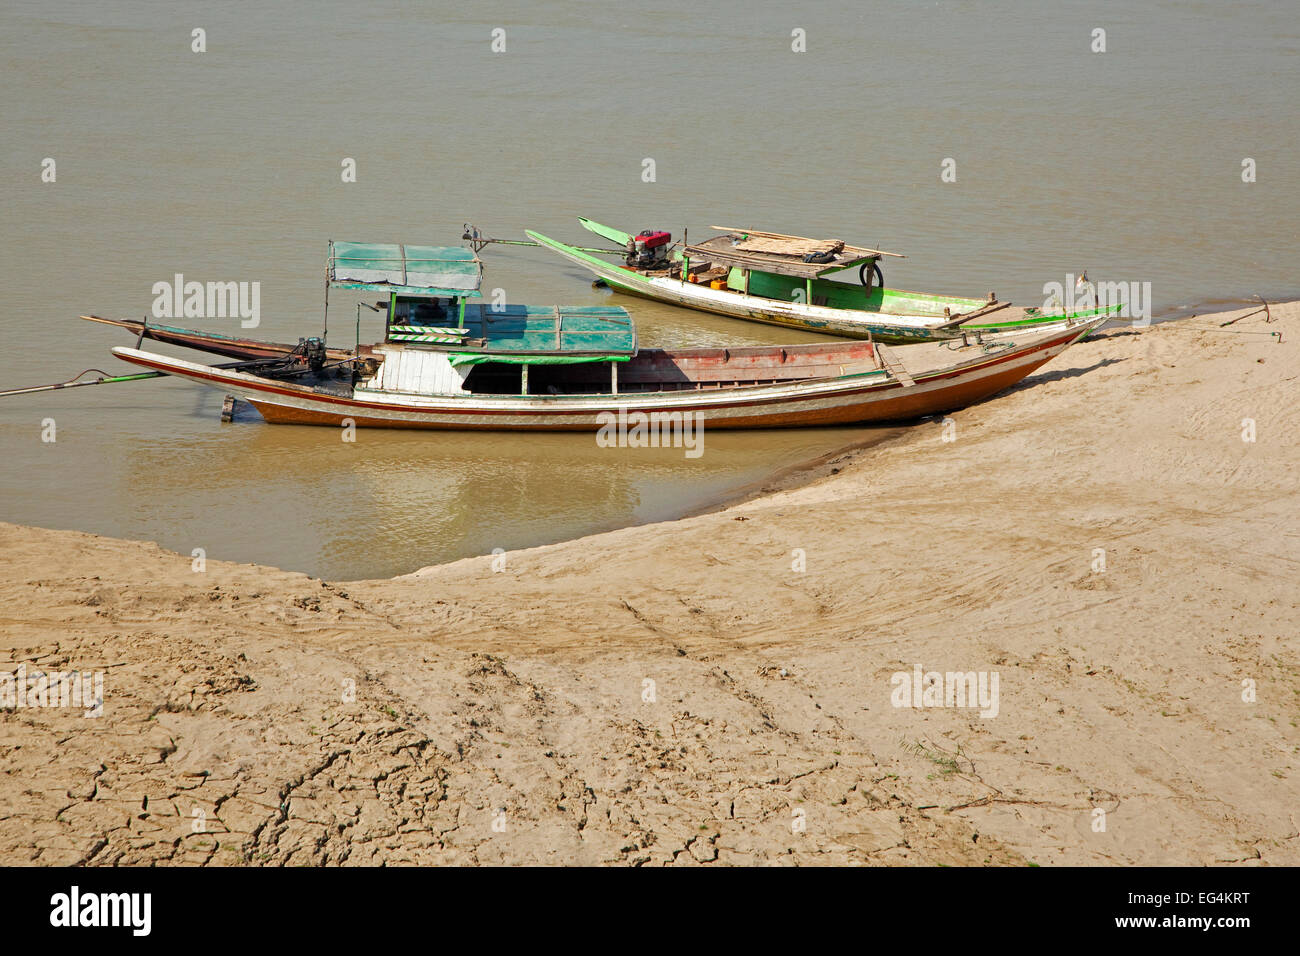 Two traditional longtail motor boats in the Irrawaddy River / Ayeyarwady River, Magwe Region, Myanmar / Burma - Stock Image